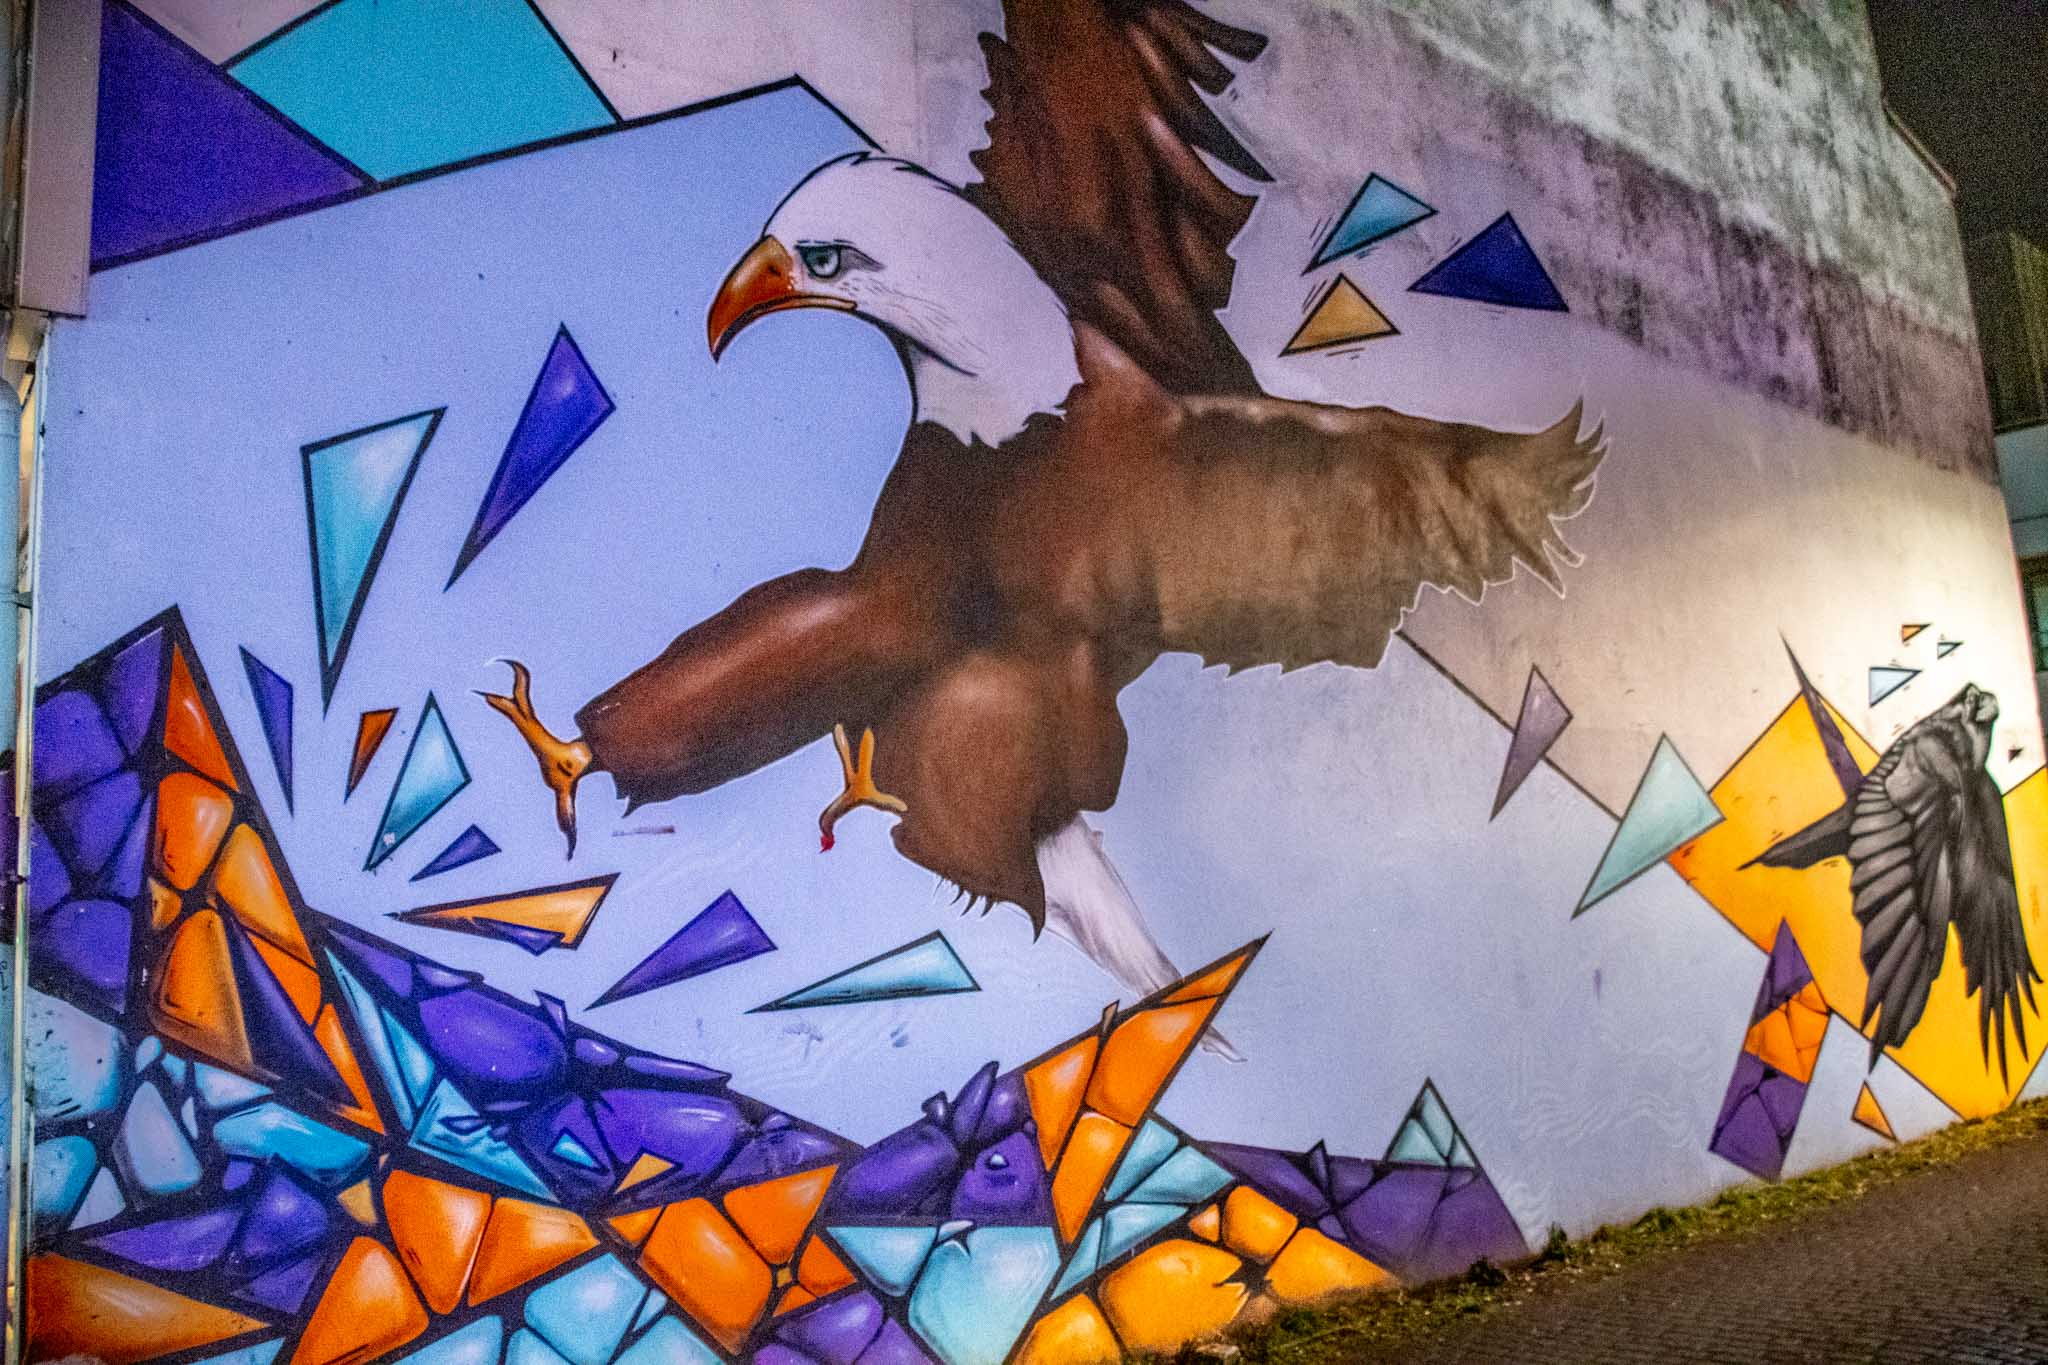 Wildlife and nature are common themes in Icelandic street art, such as this bald eagle mural.